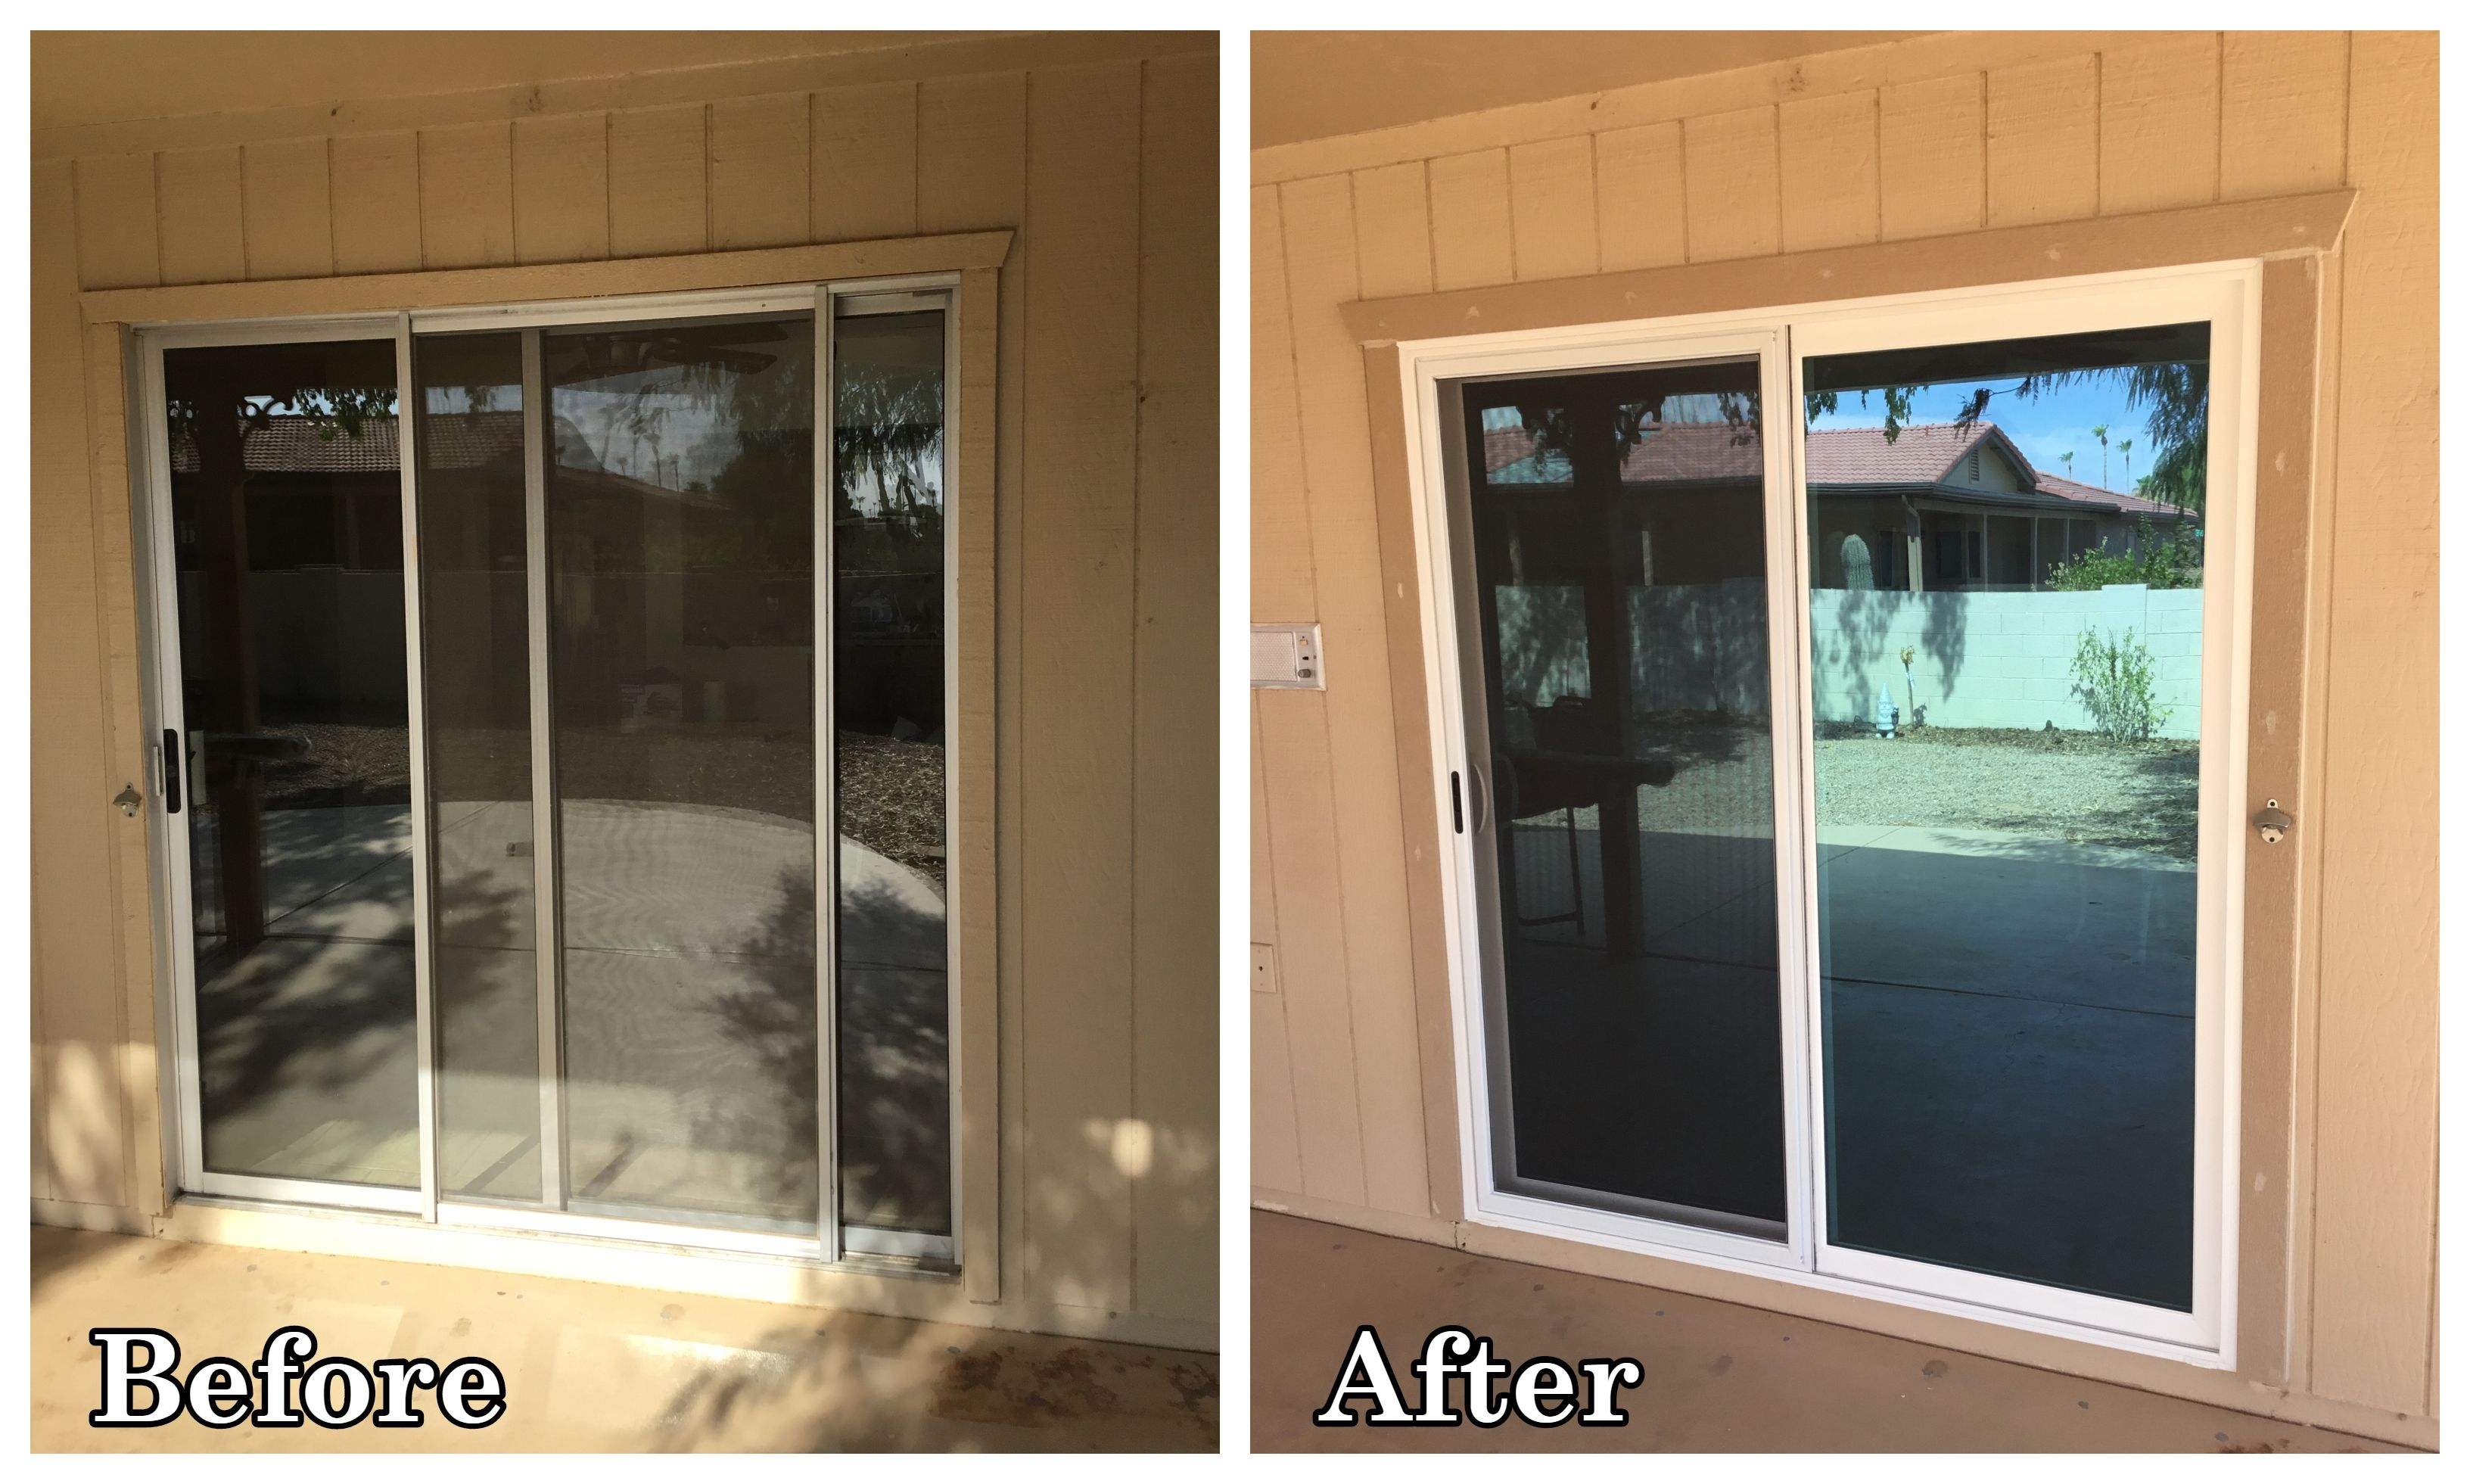 Pin On Before After Photos